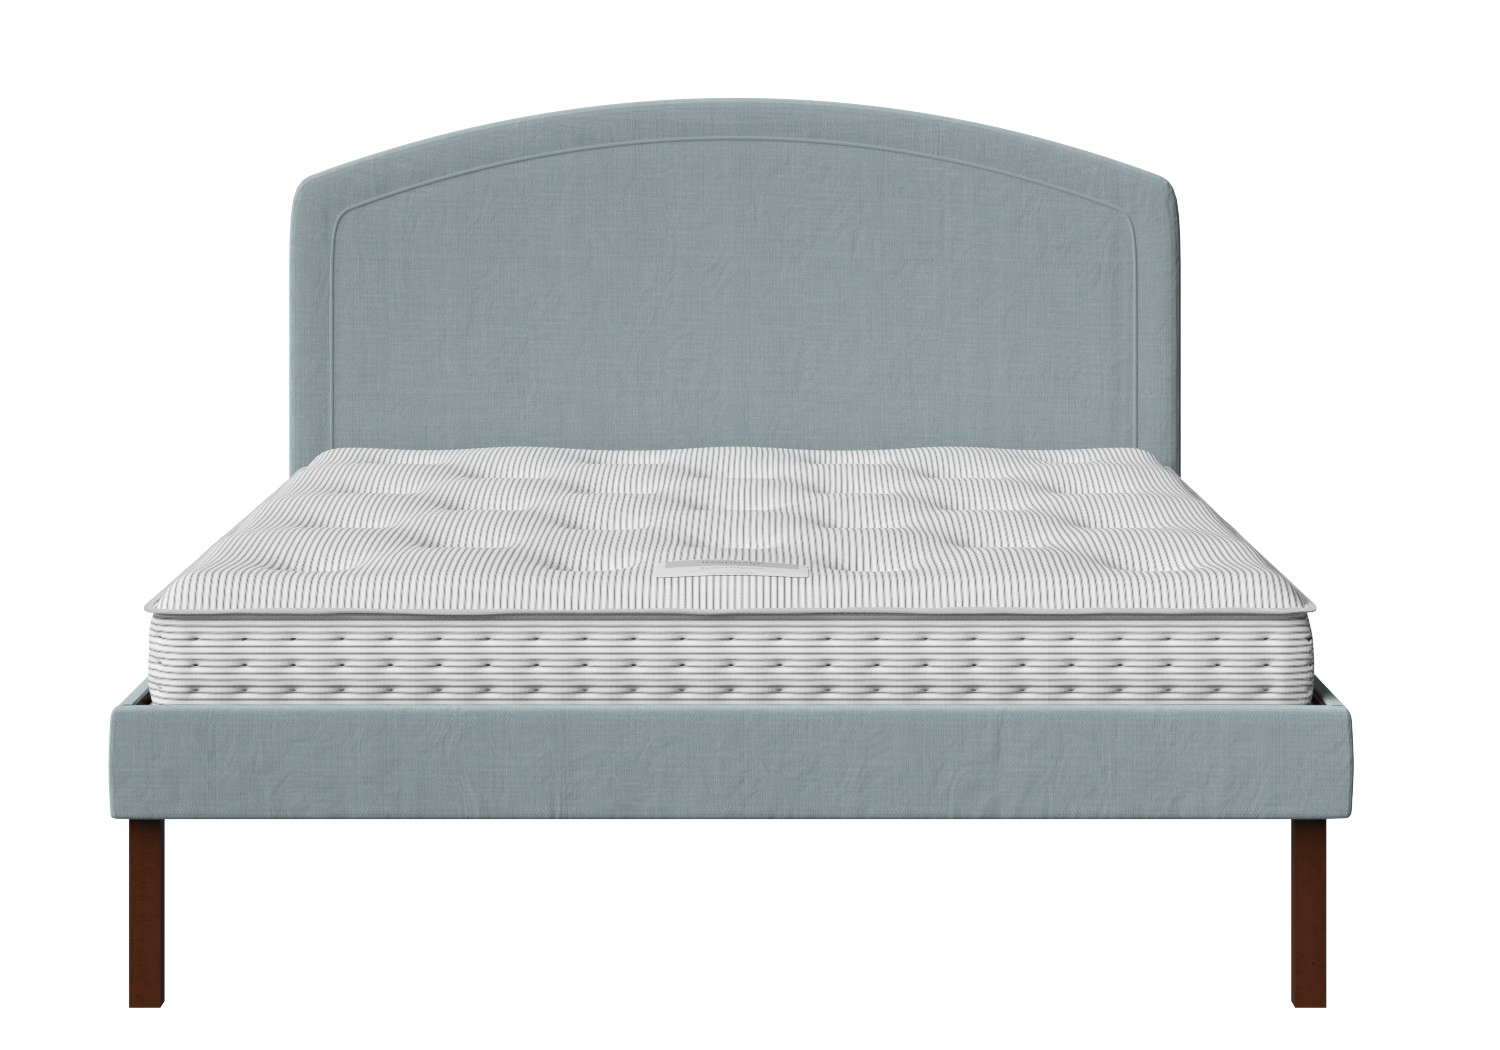 Okawa Upholstered Bed in Wedgewood fabric shown with Juno 1 mattress